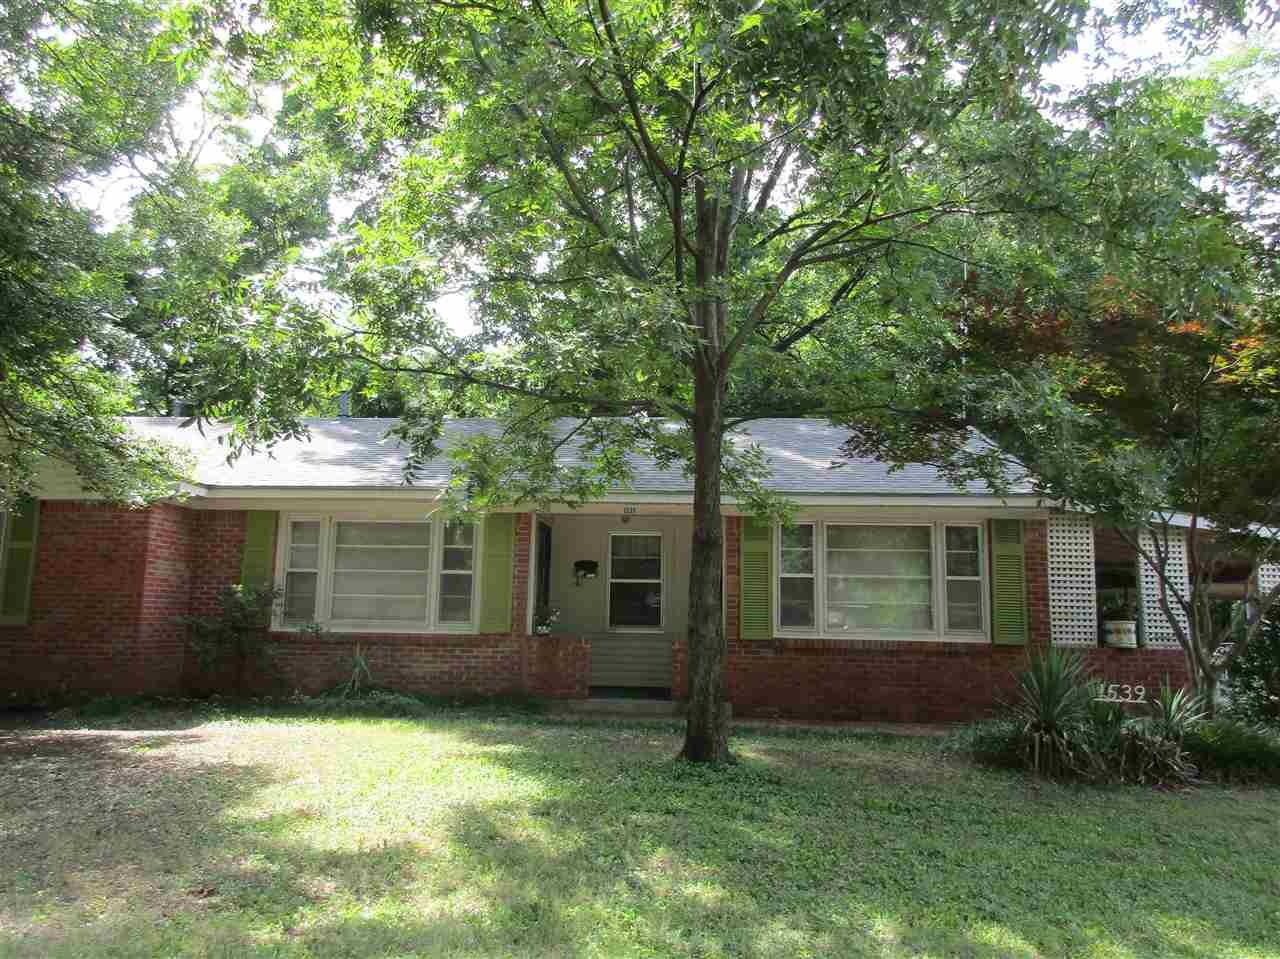 Property for sale at 1539 S Perkins Rd, Memphis,  TN 38117